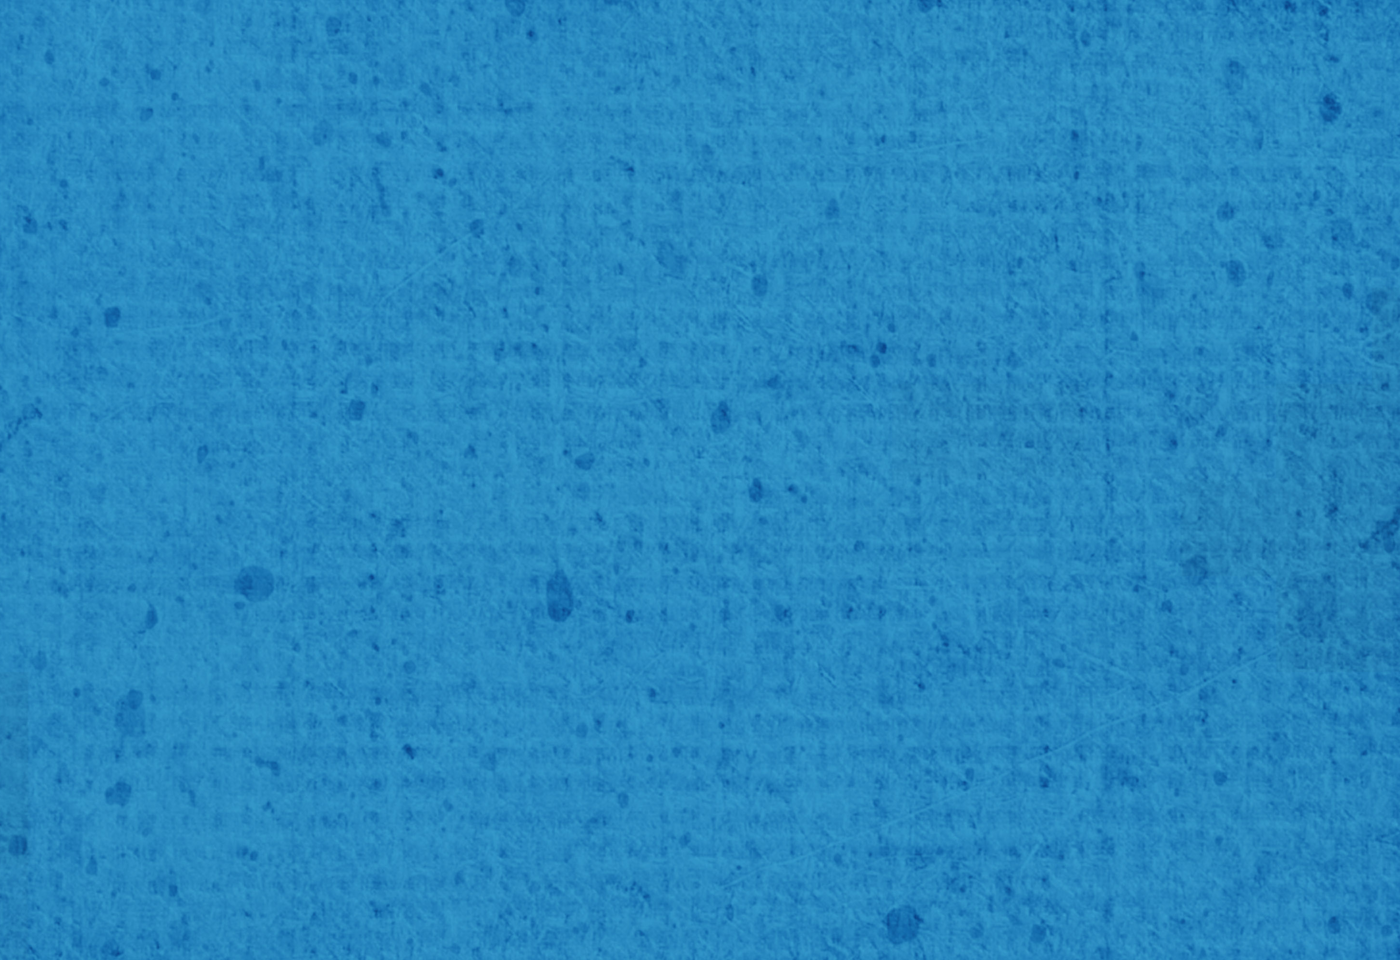 background-blue